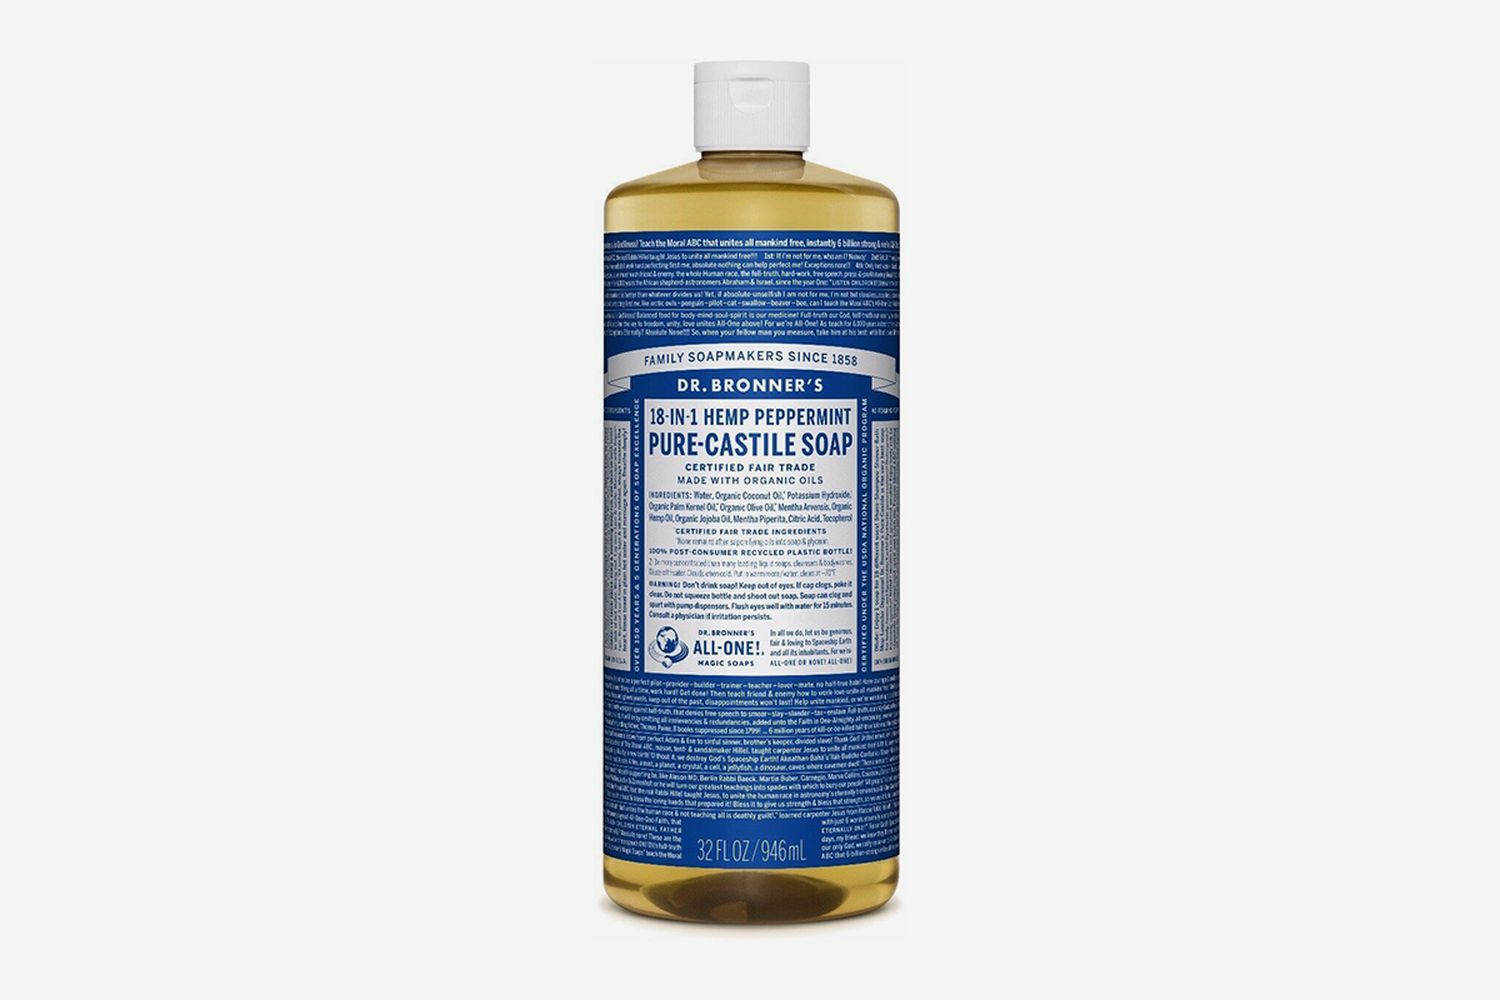 18-in-1 Pure-Castile Liquid Soap